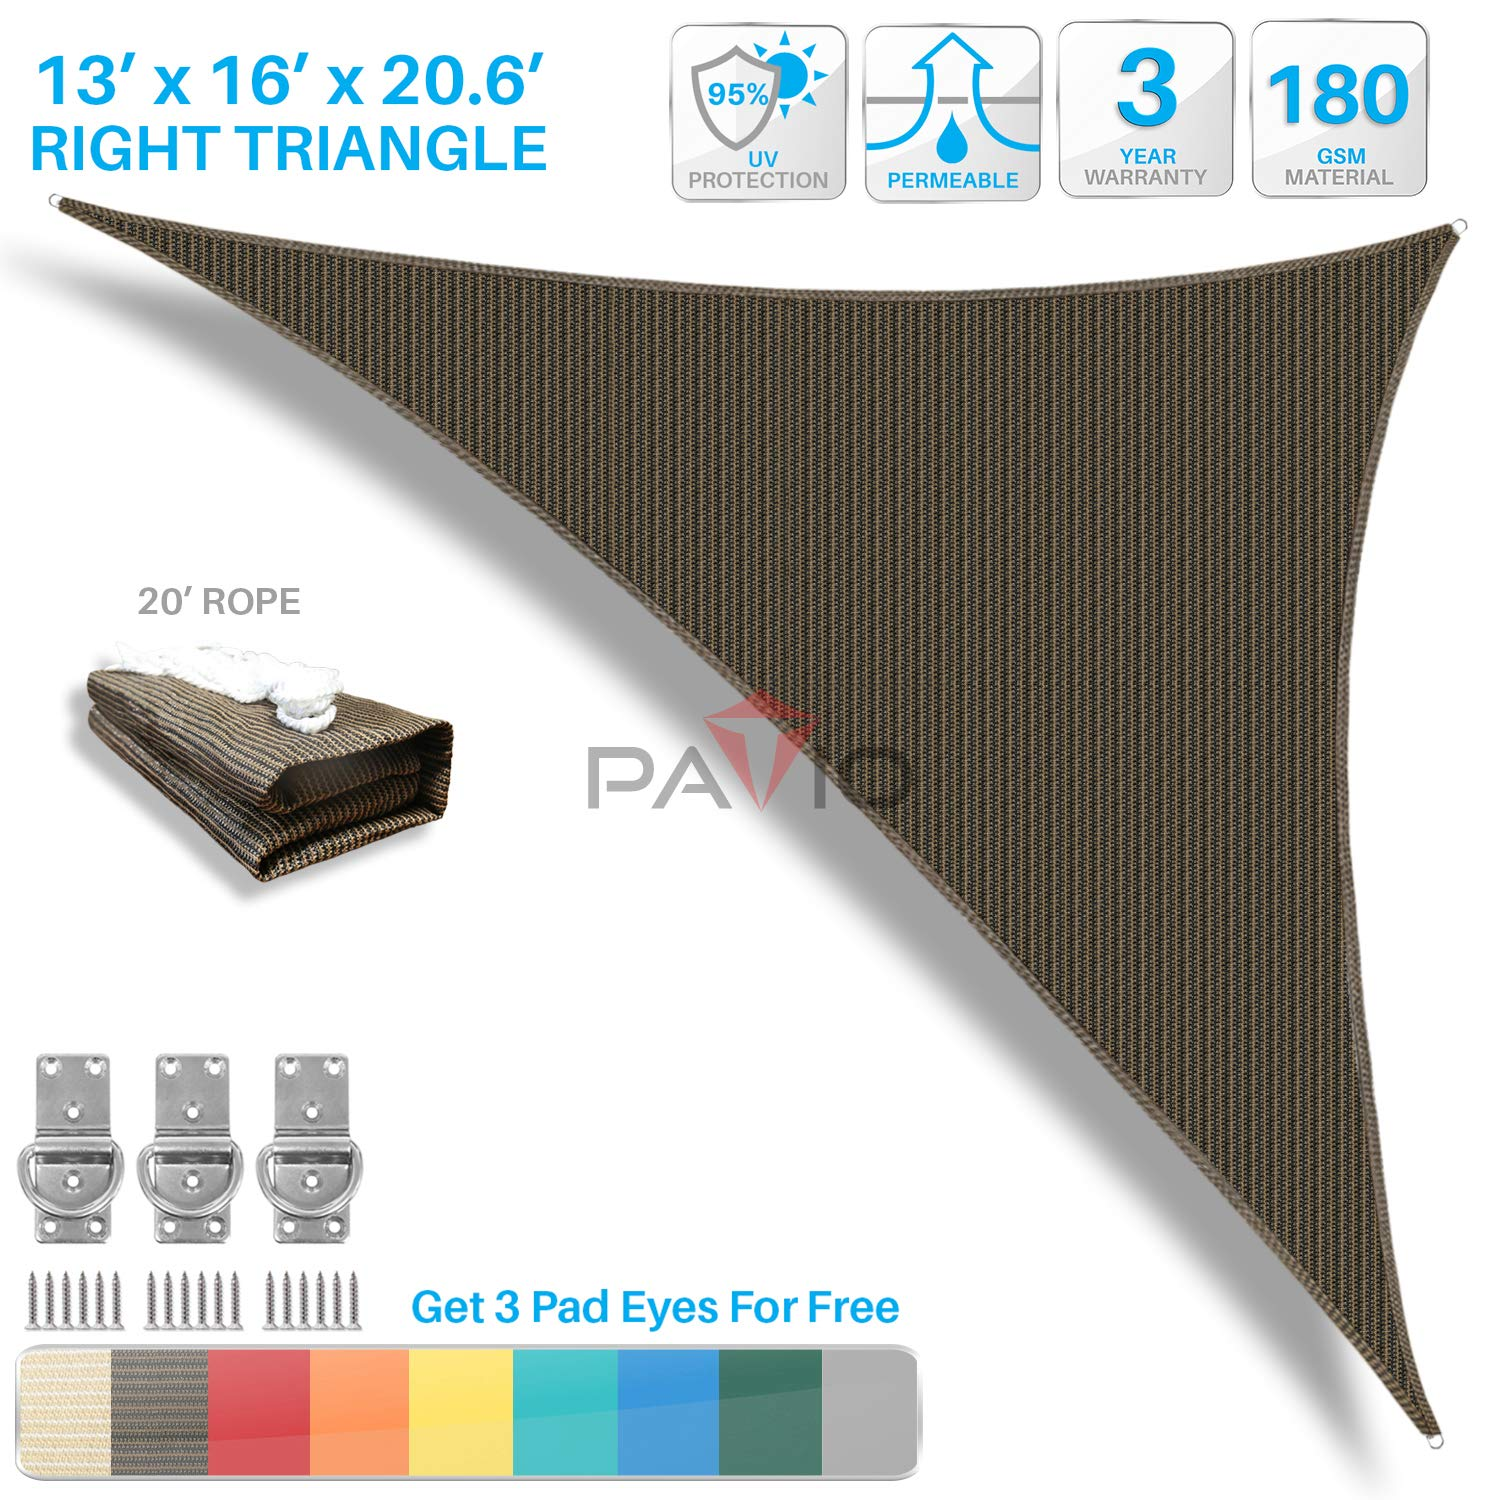 Patio Paradise 13' x 16' x 20.6' Brown Sun Shade Sail Right Triangle Canopy - Permeable UV Block Fabric Durable Outdoor - Customized Available